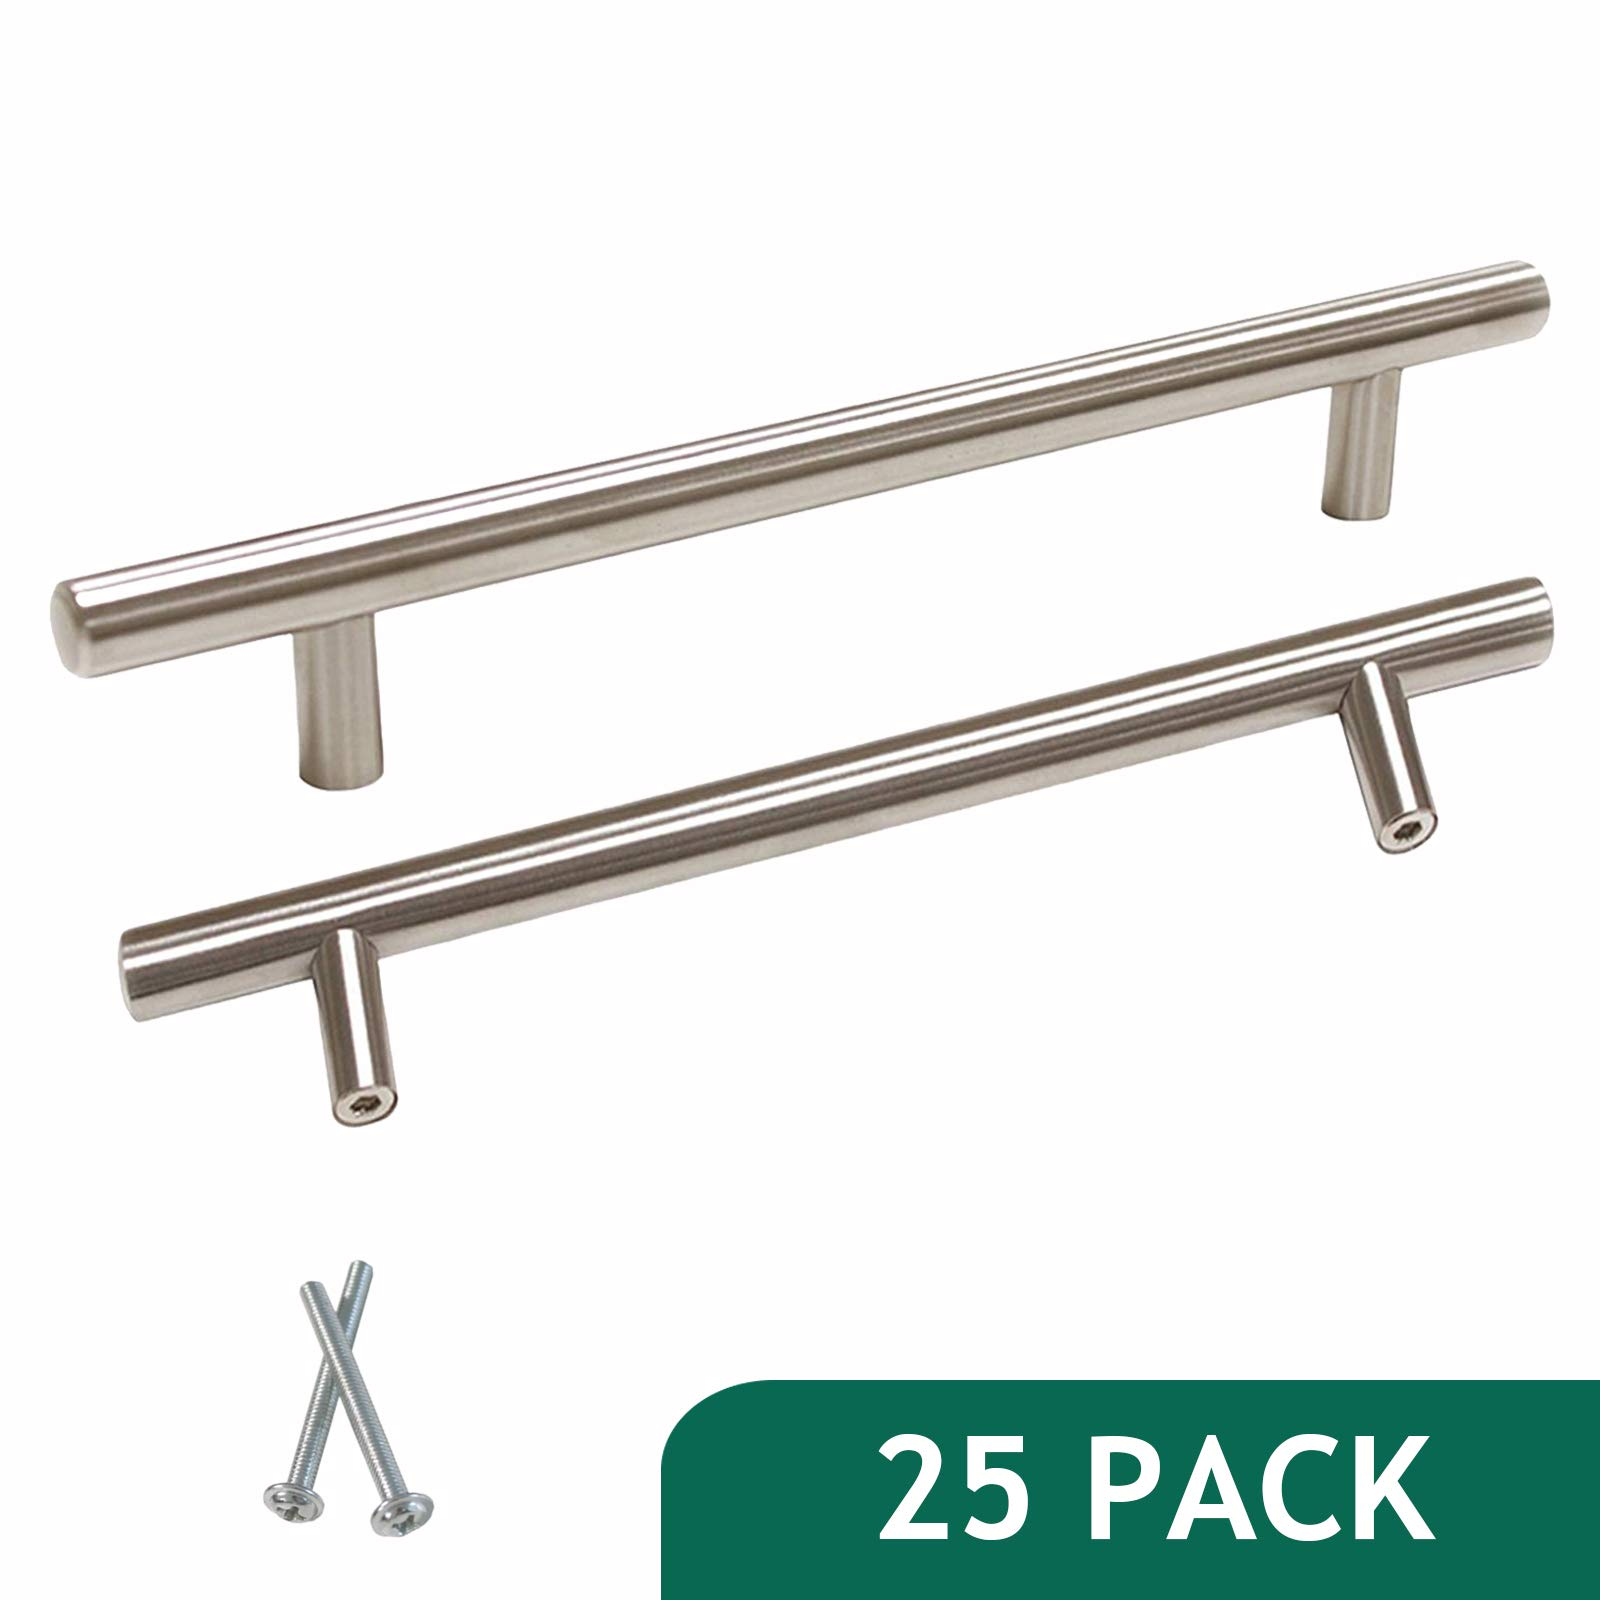 Probrico T Bar Modern Cabinet Hardware Bedroom Drawer Pulls Stainless Steel Kitchen Handles 6-1/3 inch Hole Spacing 25 Packs